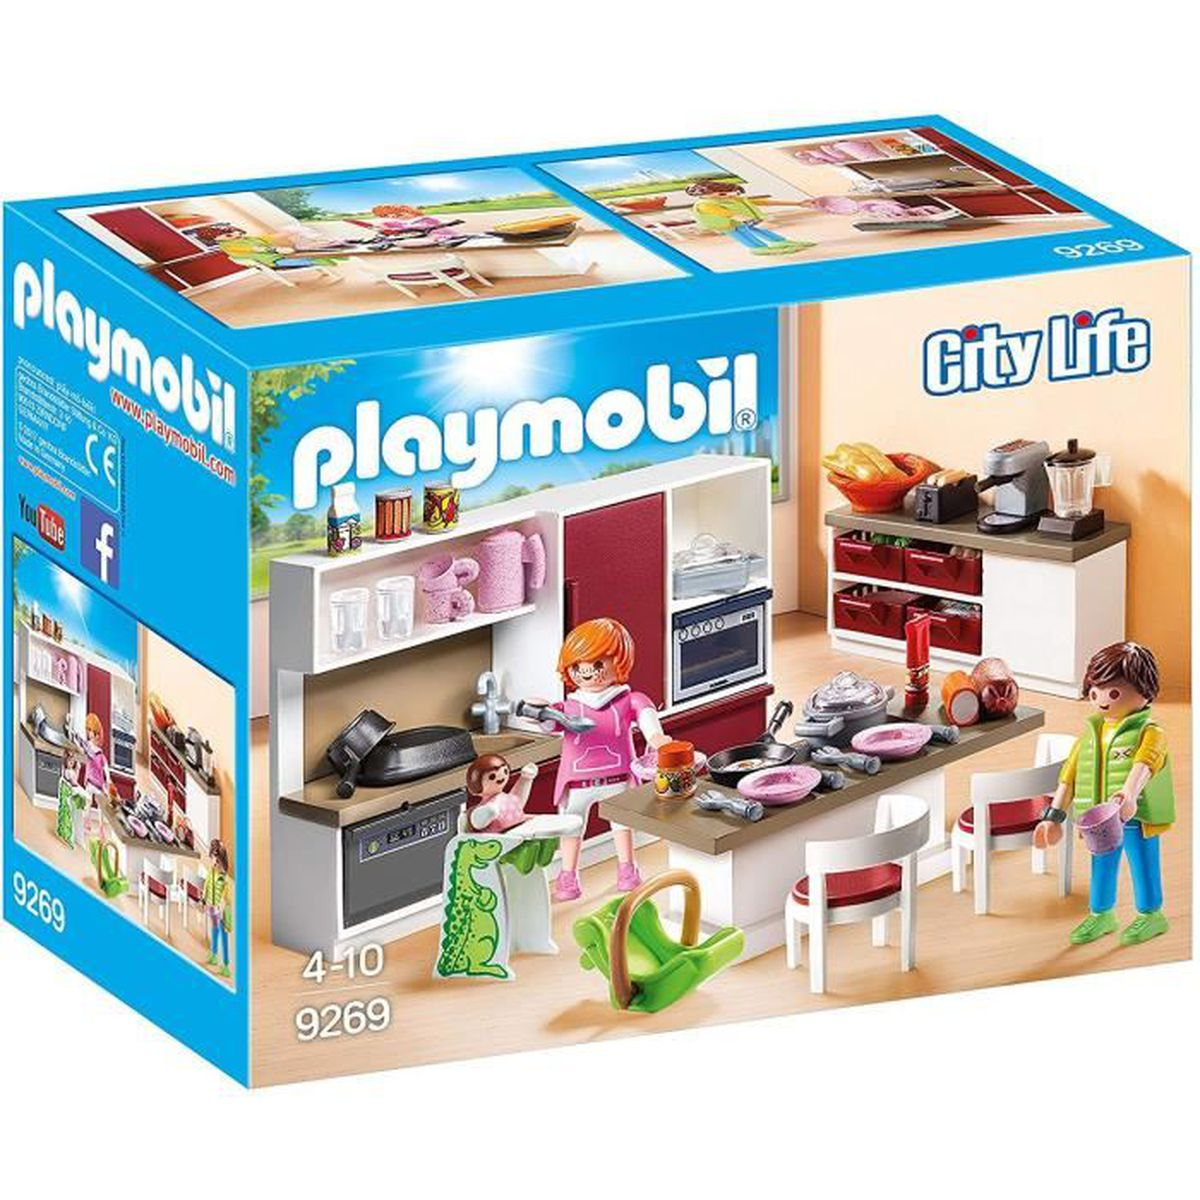 emejing playmobil maison moderne cuisine photos seiunkel. Black Bedroom Furniture Sets. Home Design Ideas